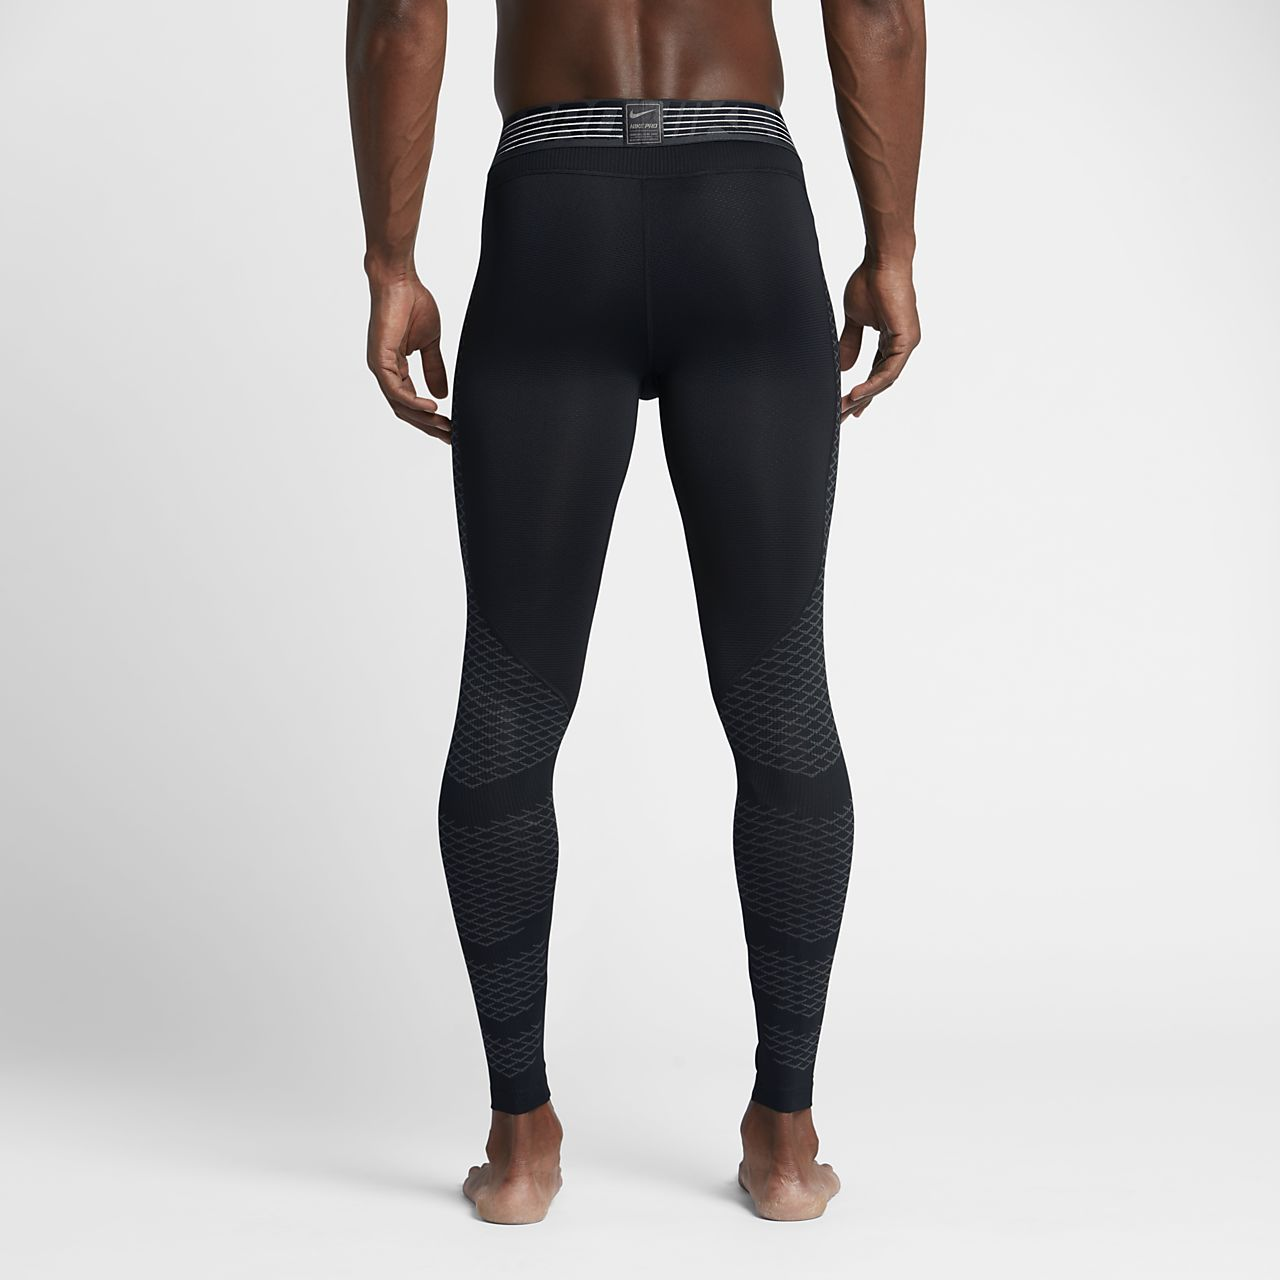 ... Nike Pro HyperCool Men's Training Tights